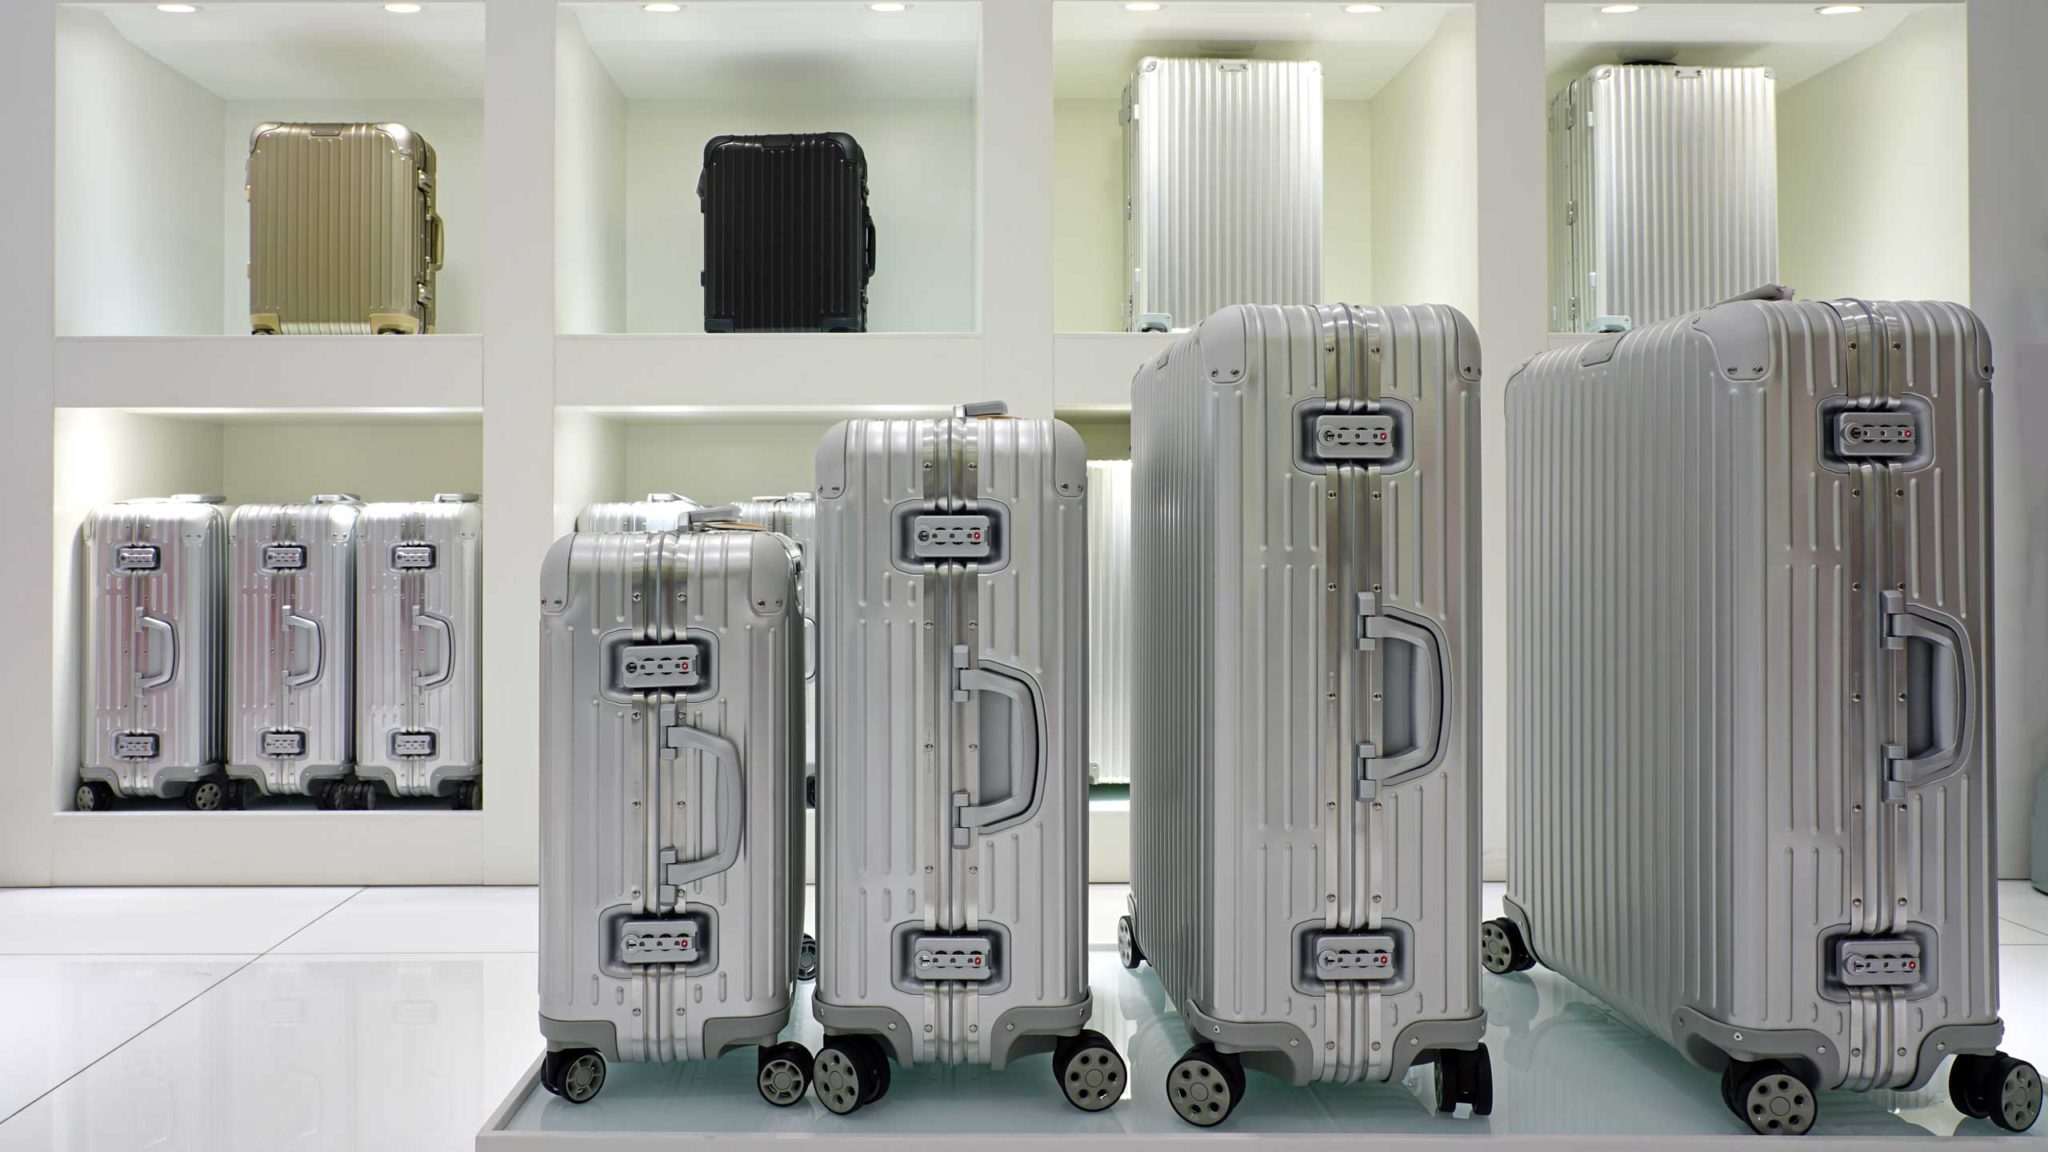 Silver Rimowa suitcases in a shop